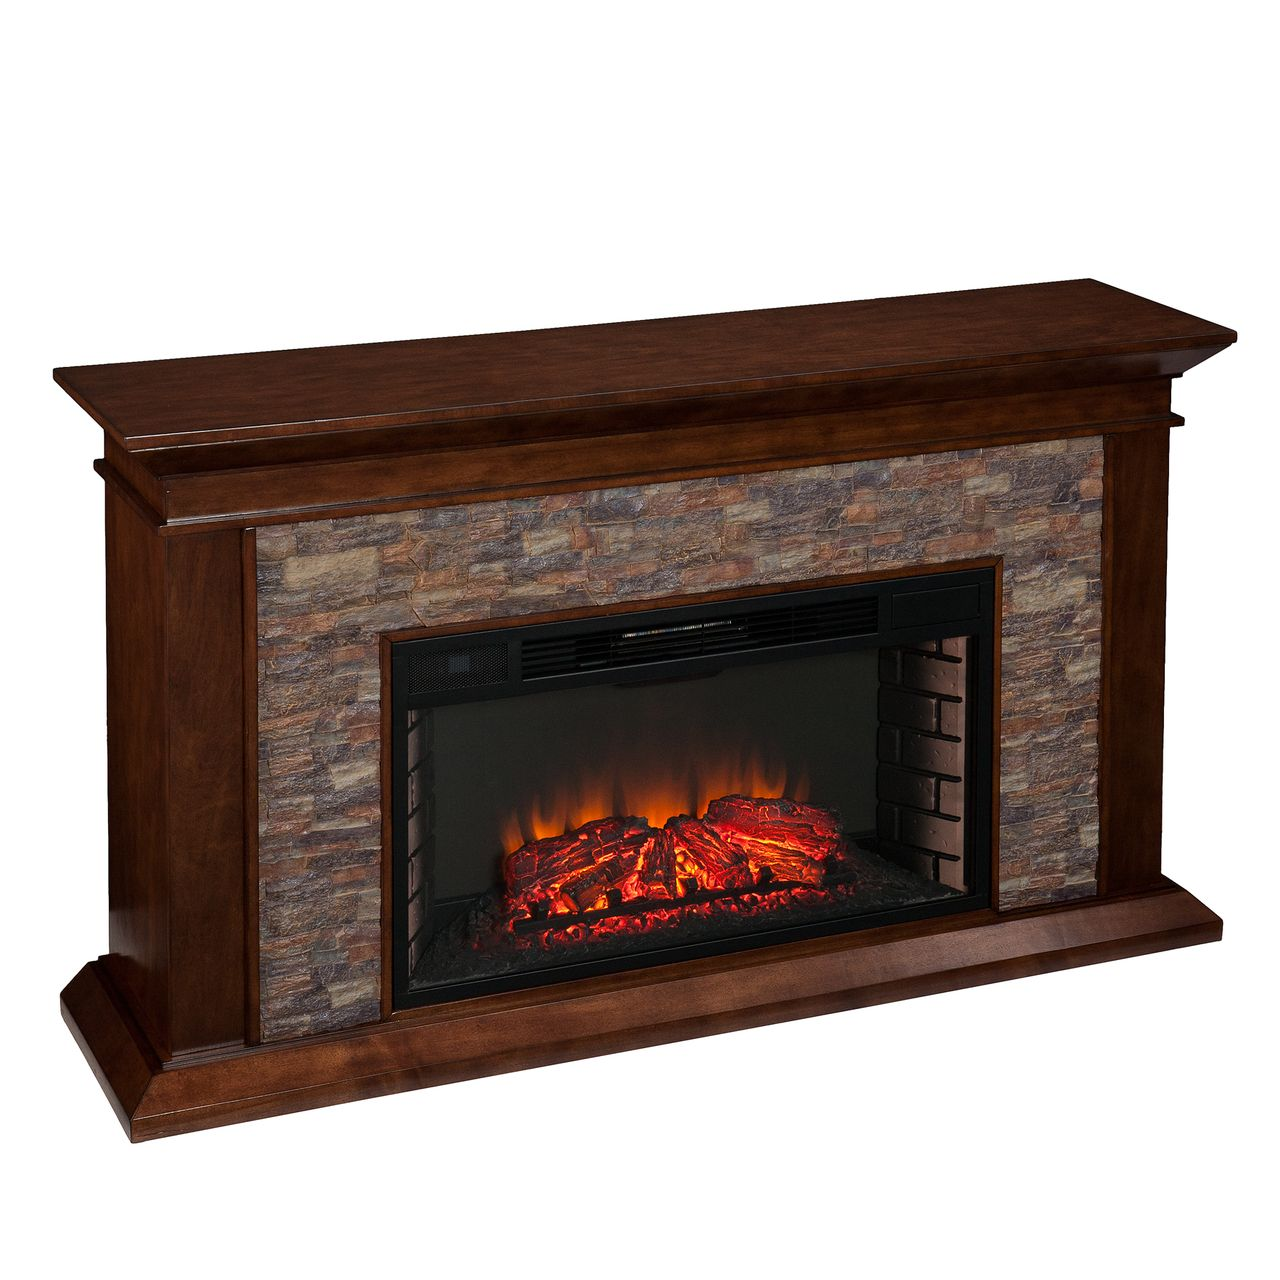 SEI Canyon Heights Simulated Stone Electric Fireplace in Whiskey Maple